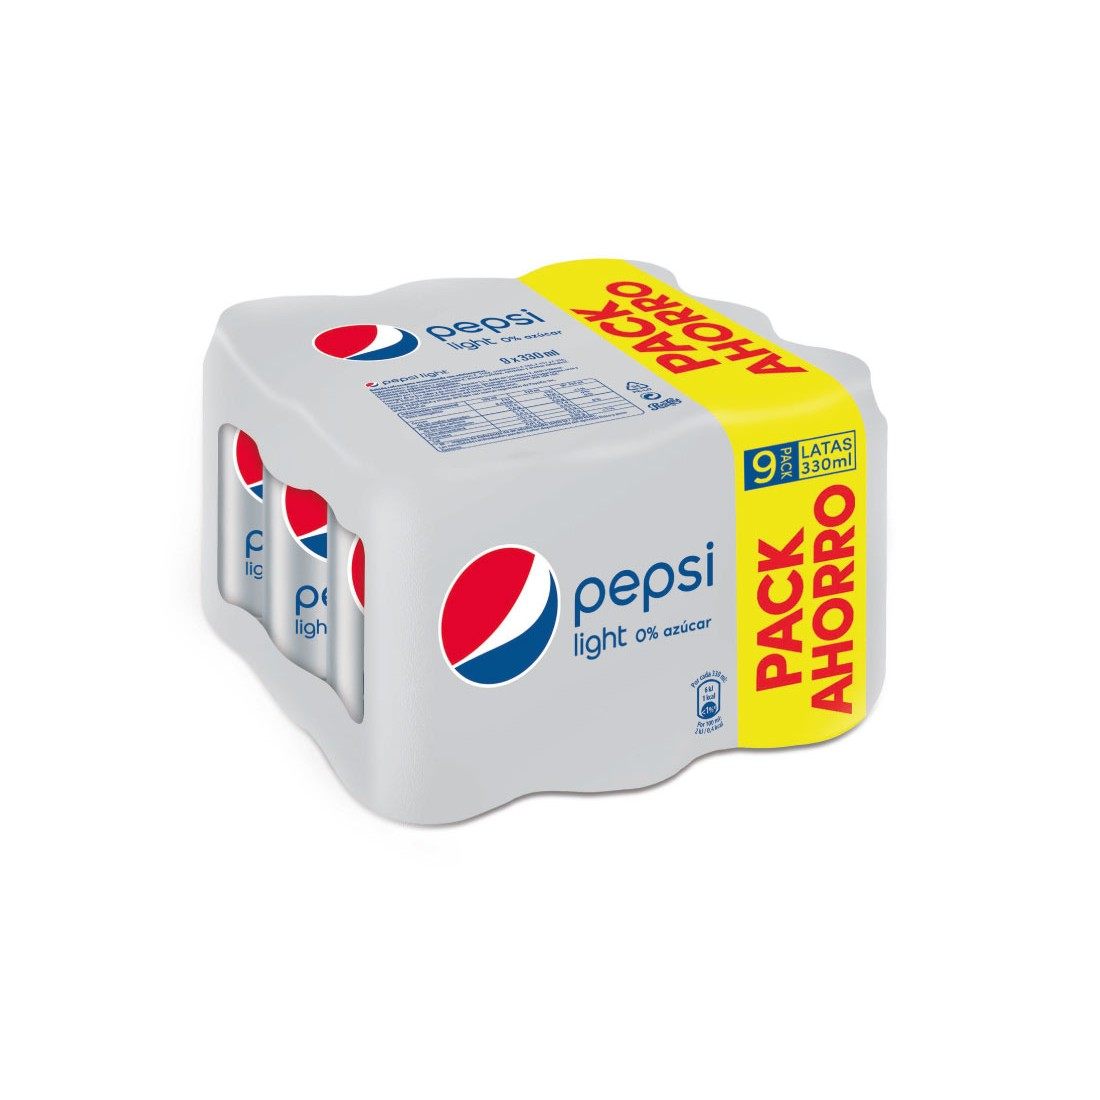 Pepsi light de 33cl. por 9 unidades en lata